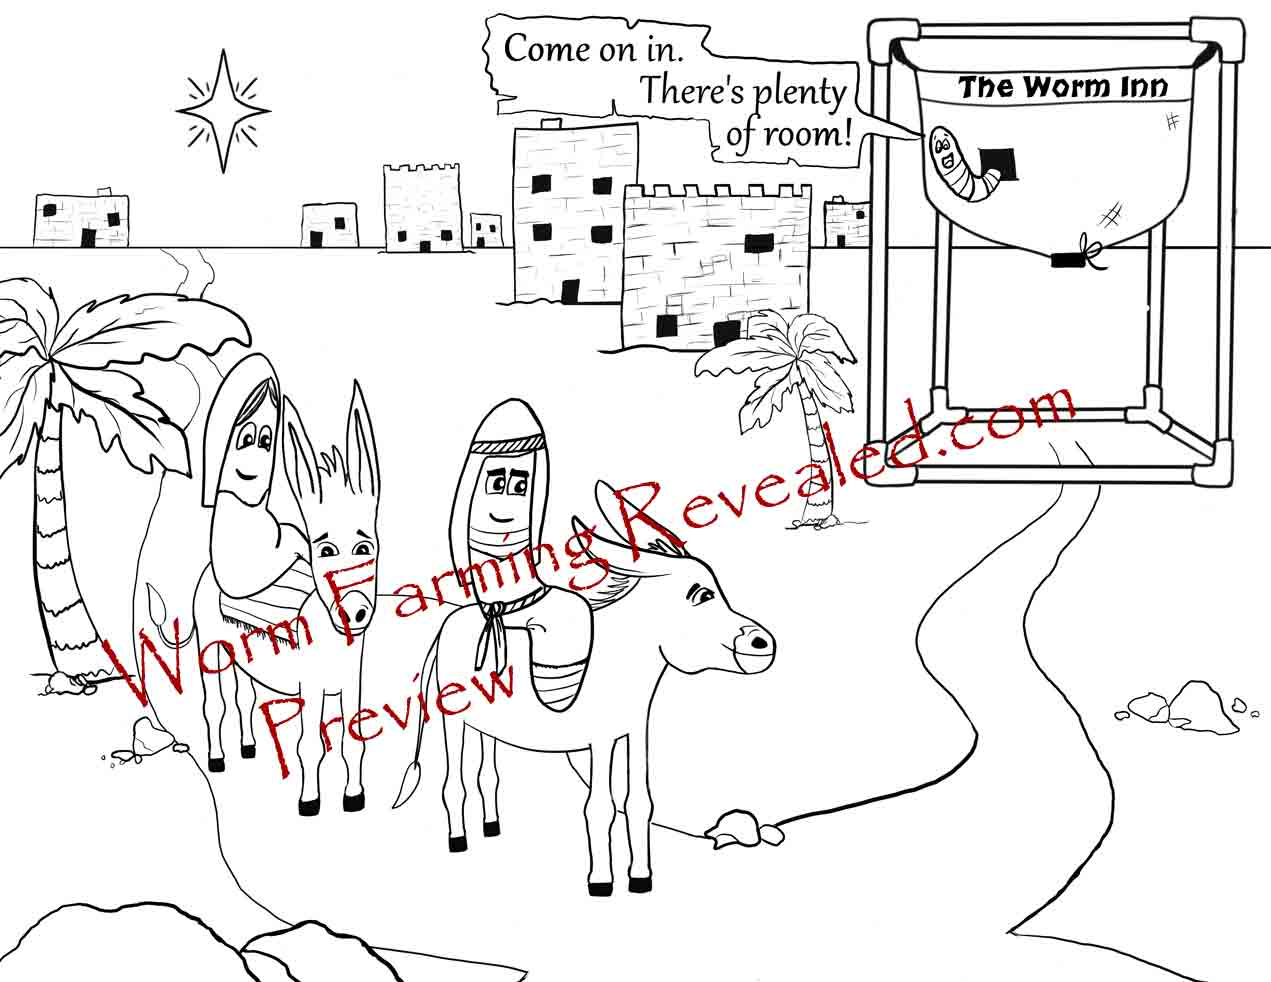 Worm Inn Coloring Page